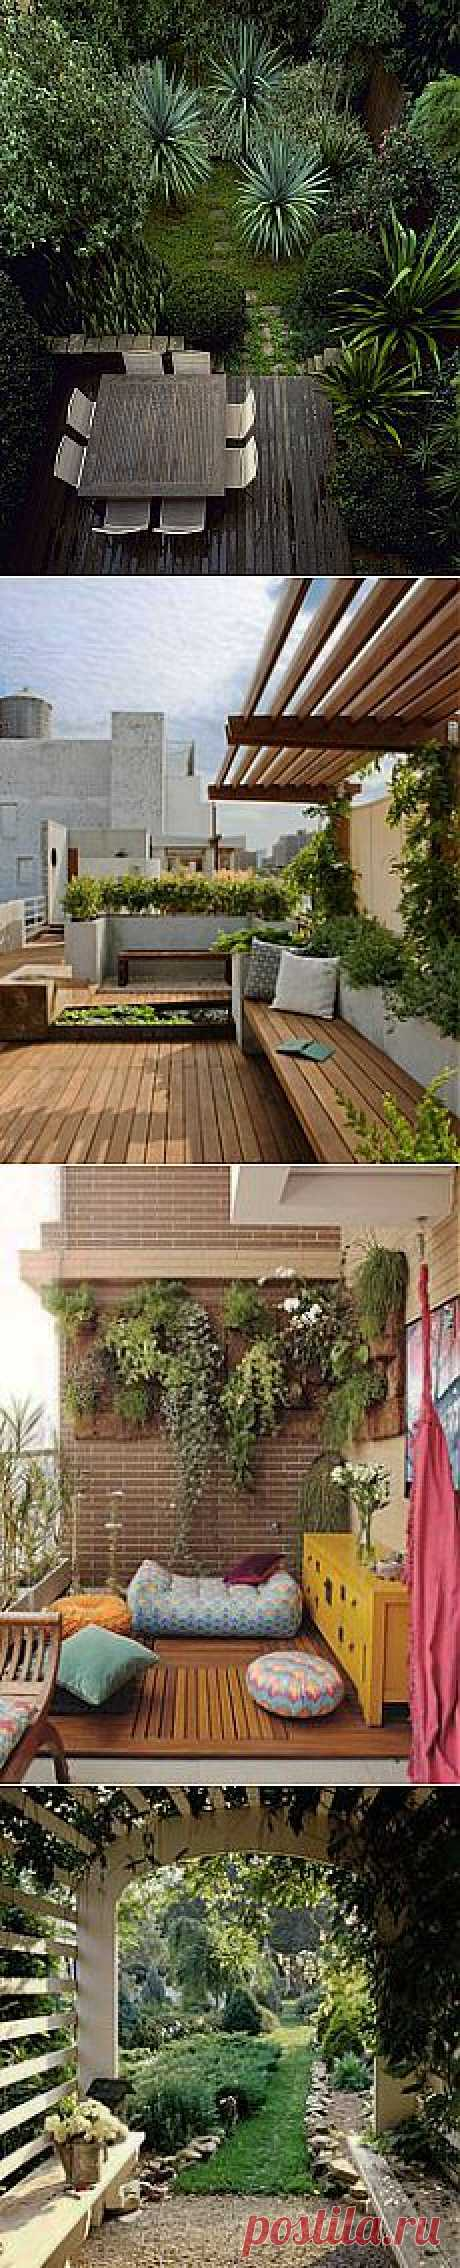 Modern Patio & Gardenscape | My garden